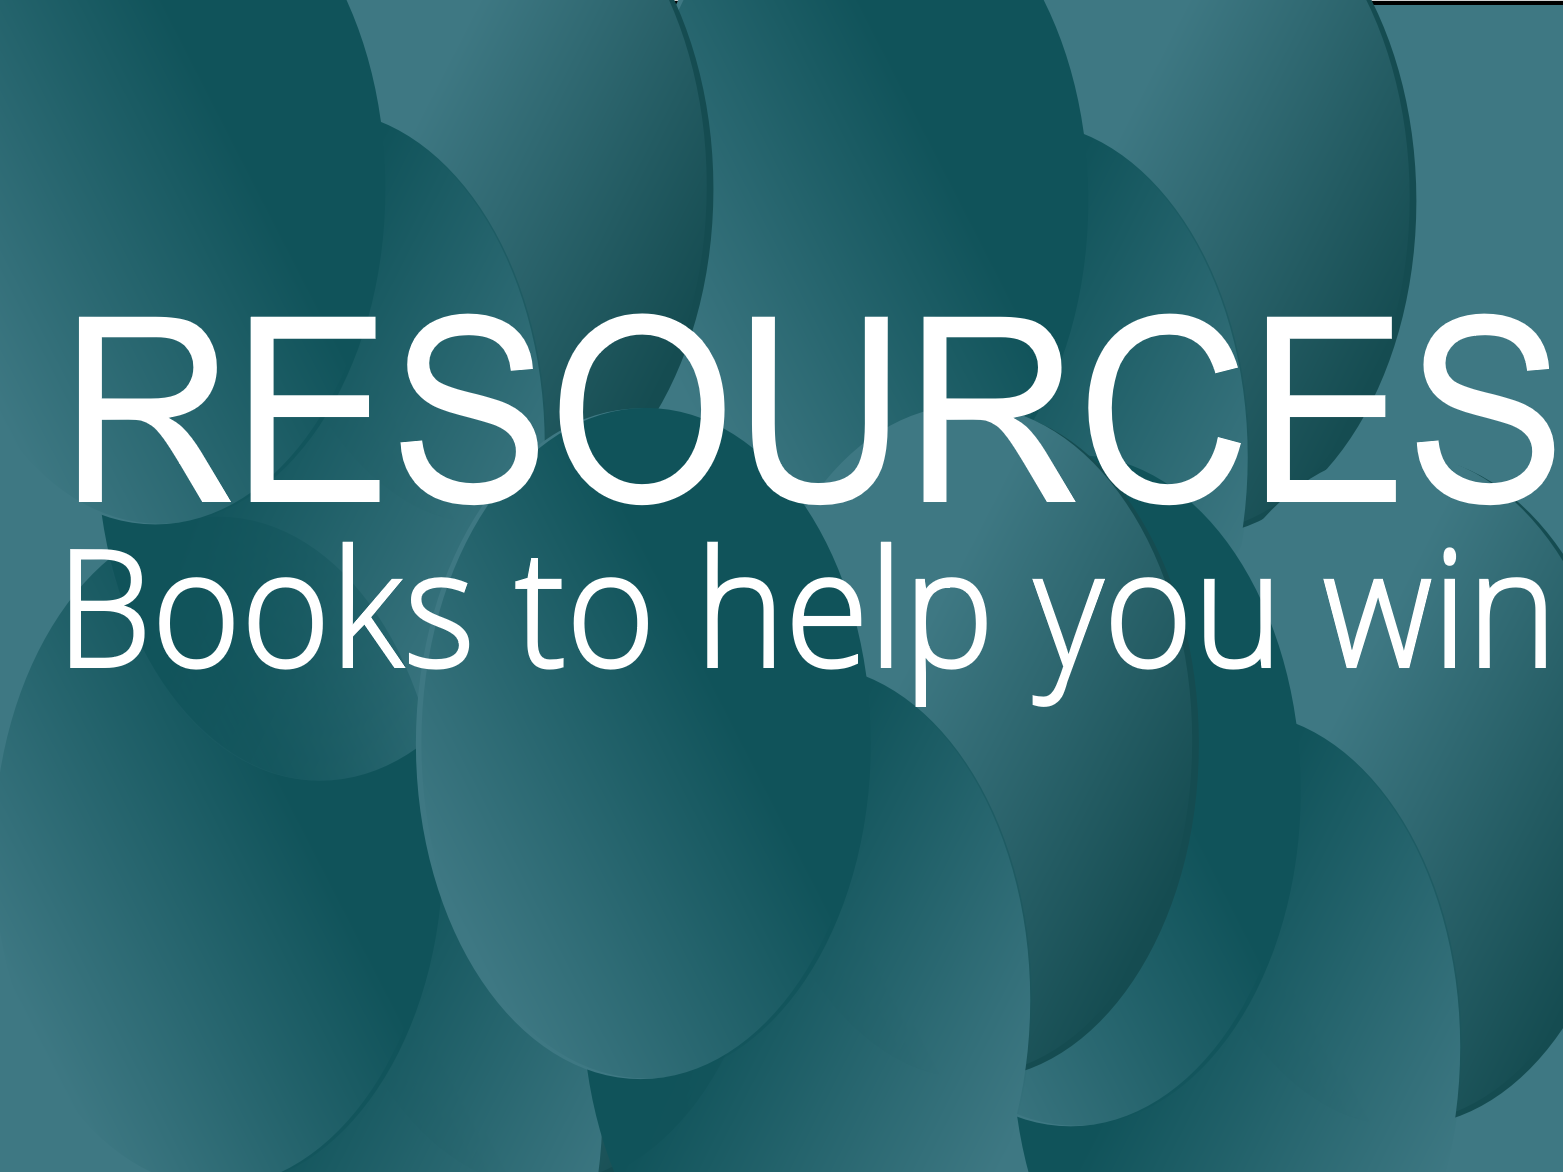 Resources: Books to help you win